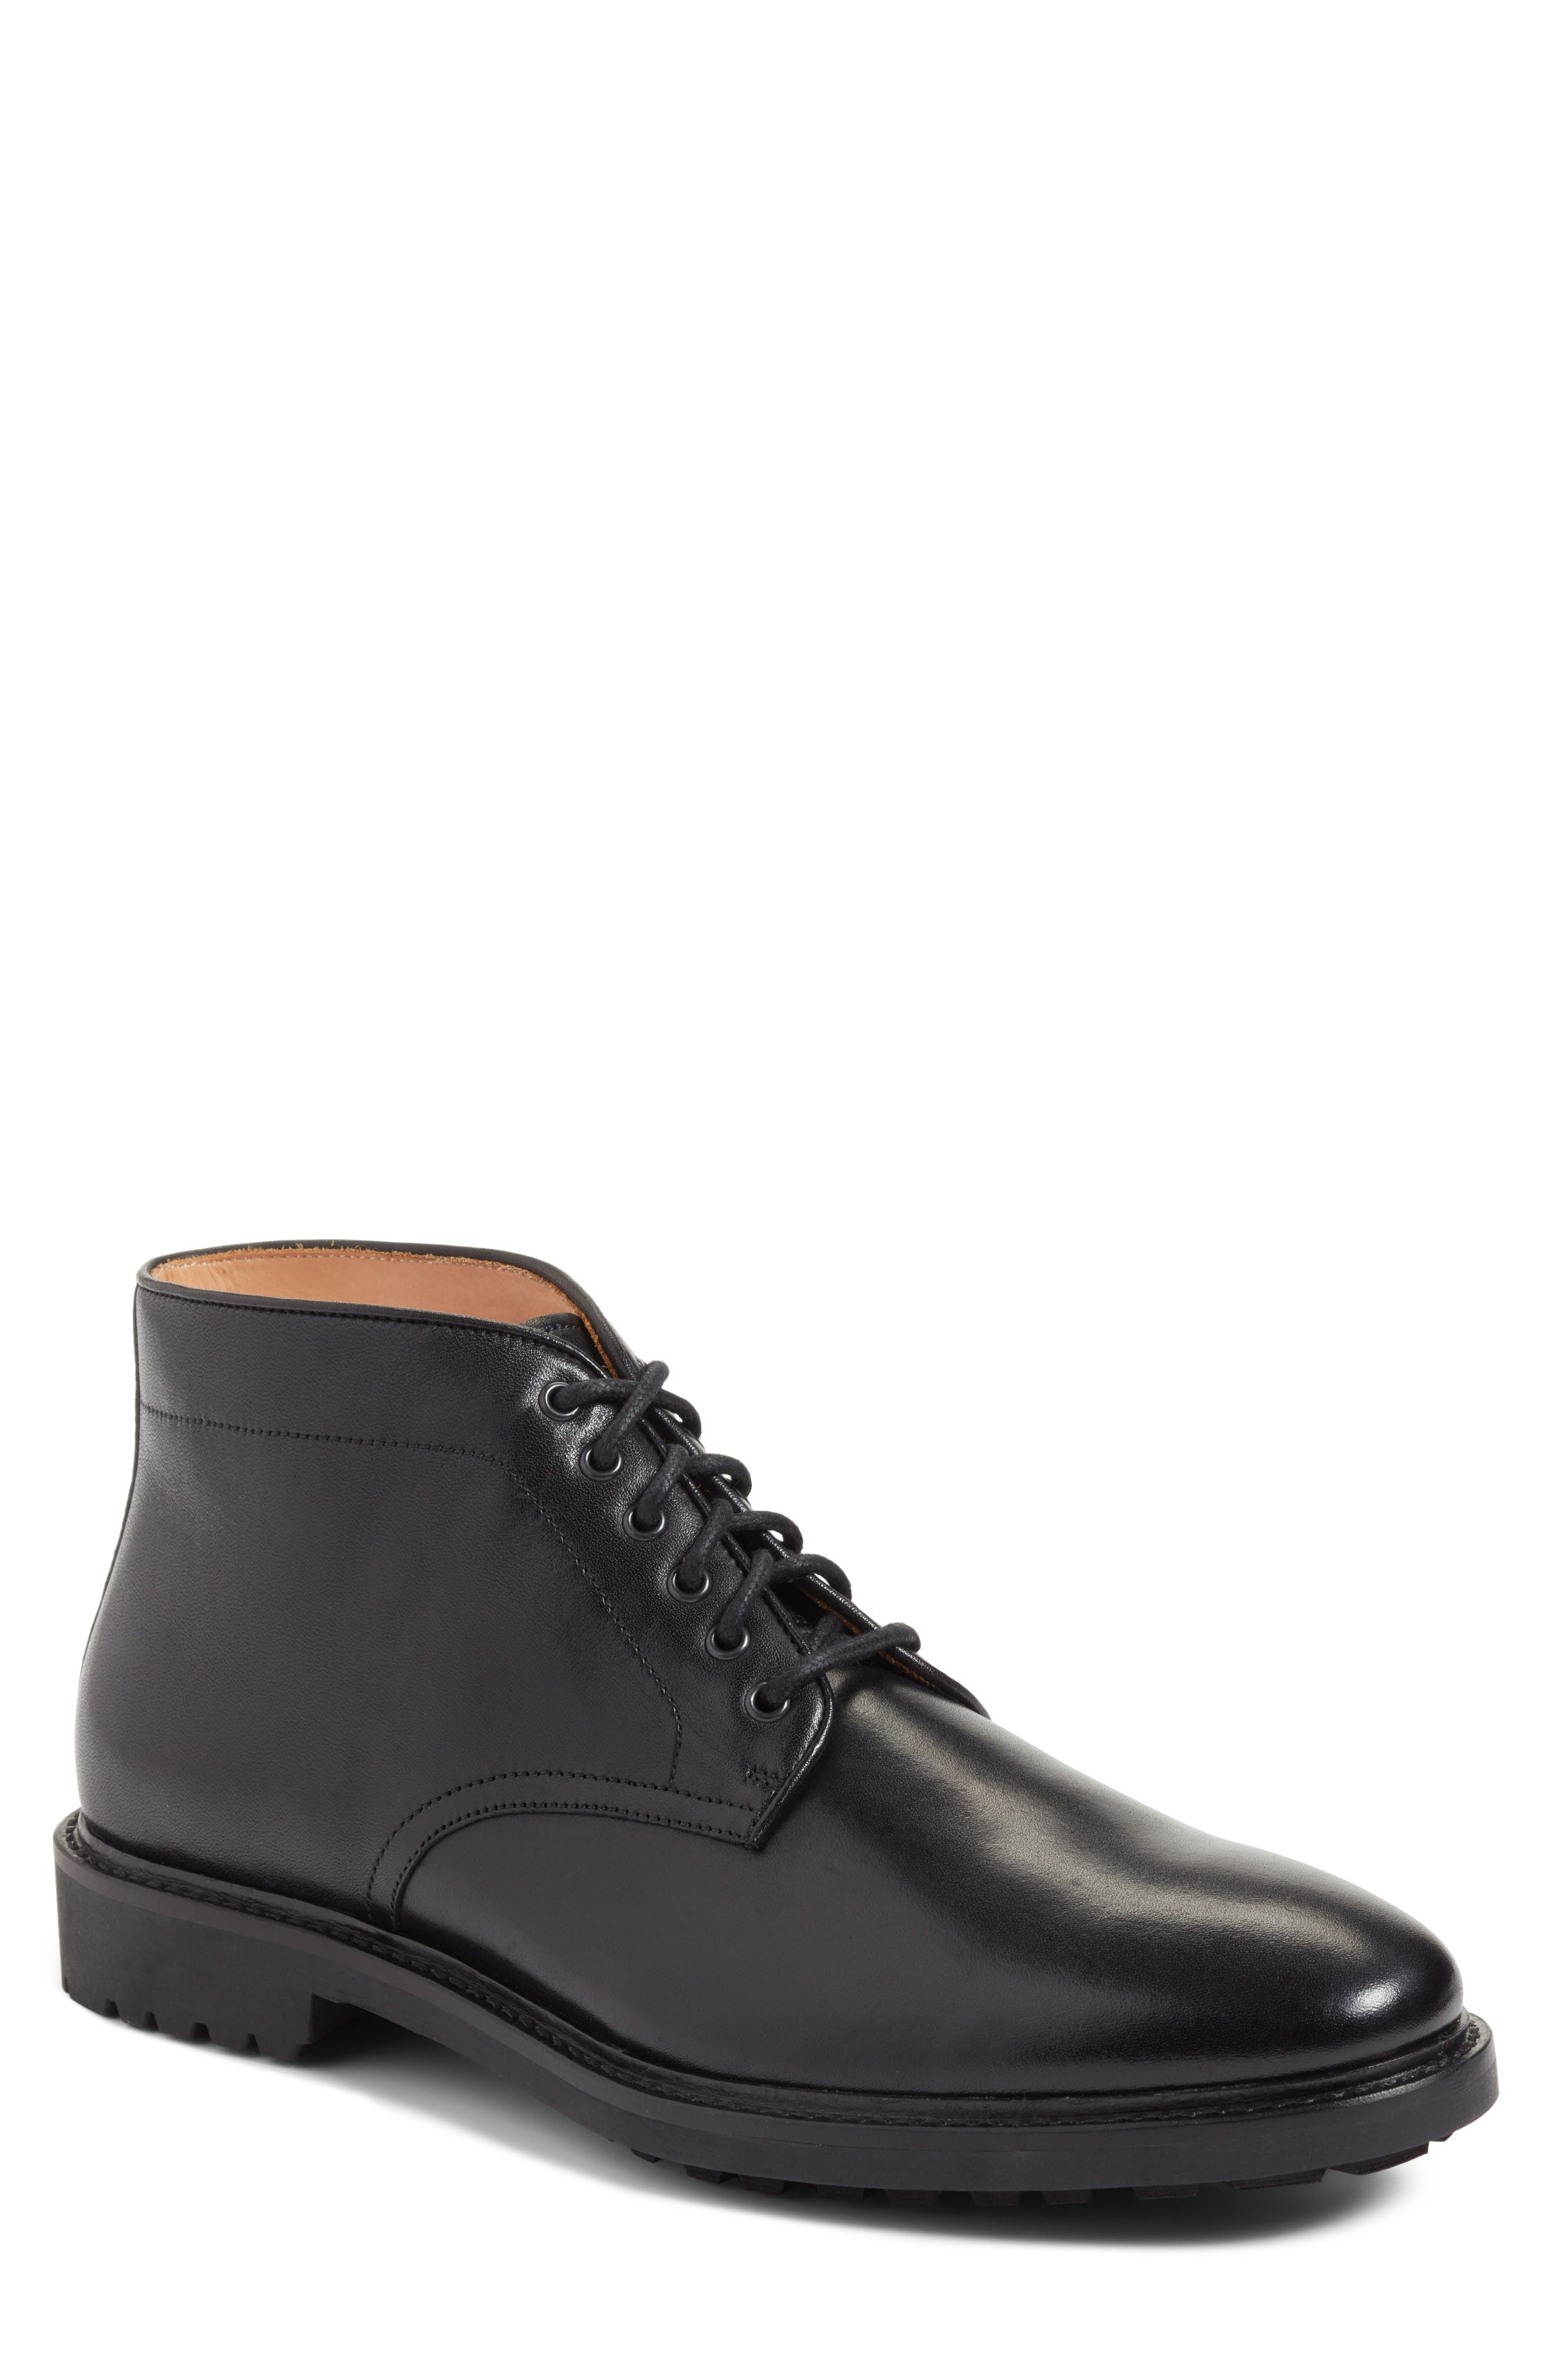 John W. Nordstrom® Ramiro Plain Toe Boot (Men)